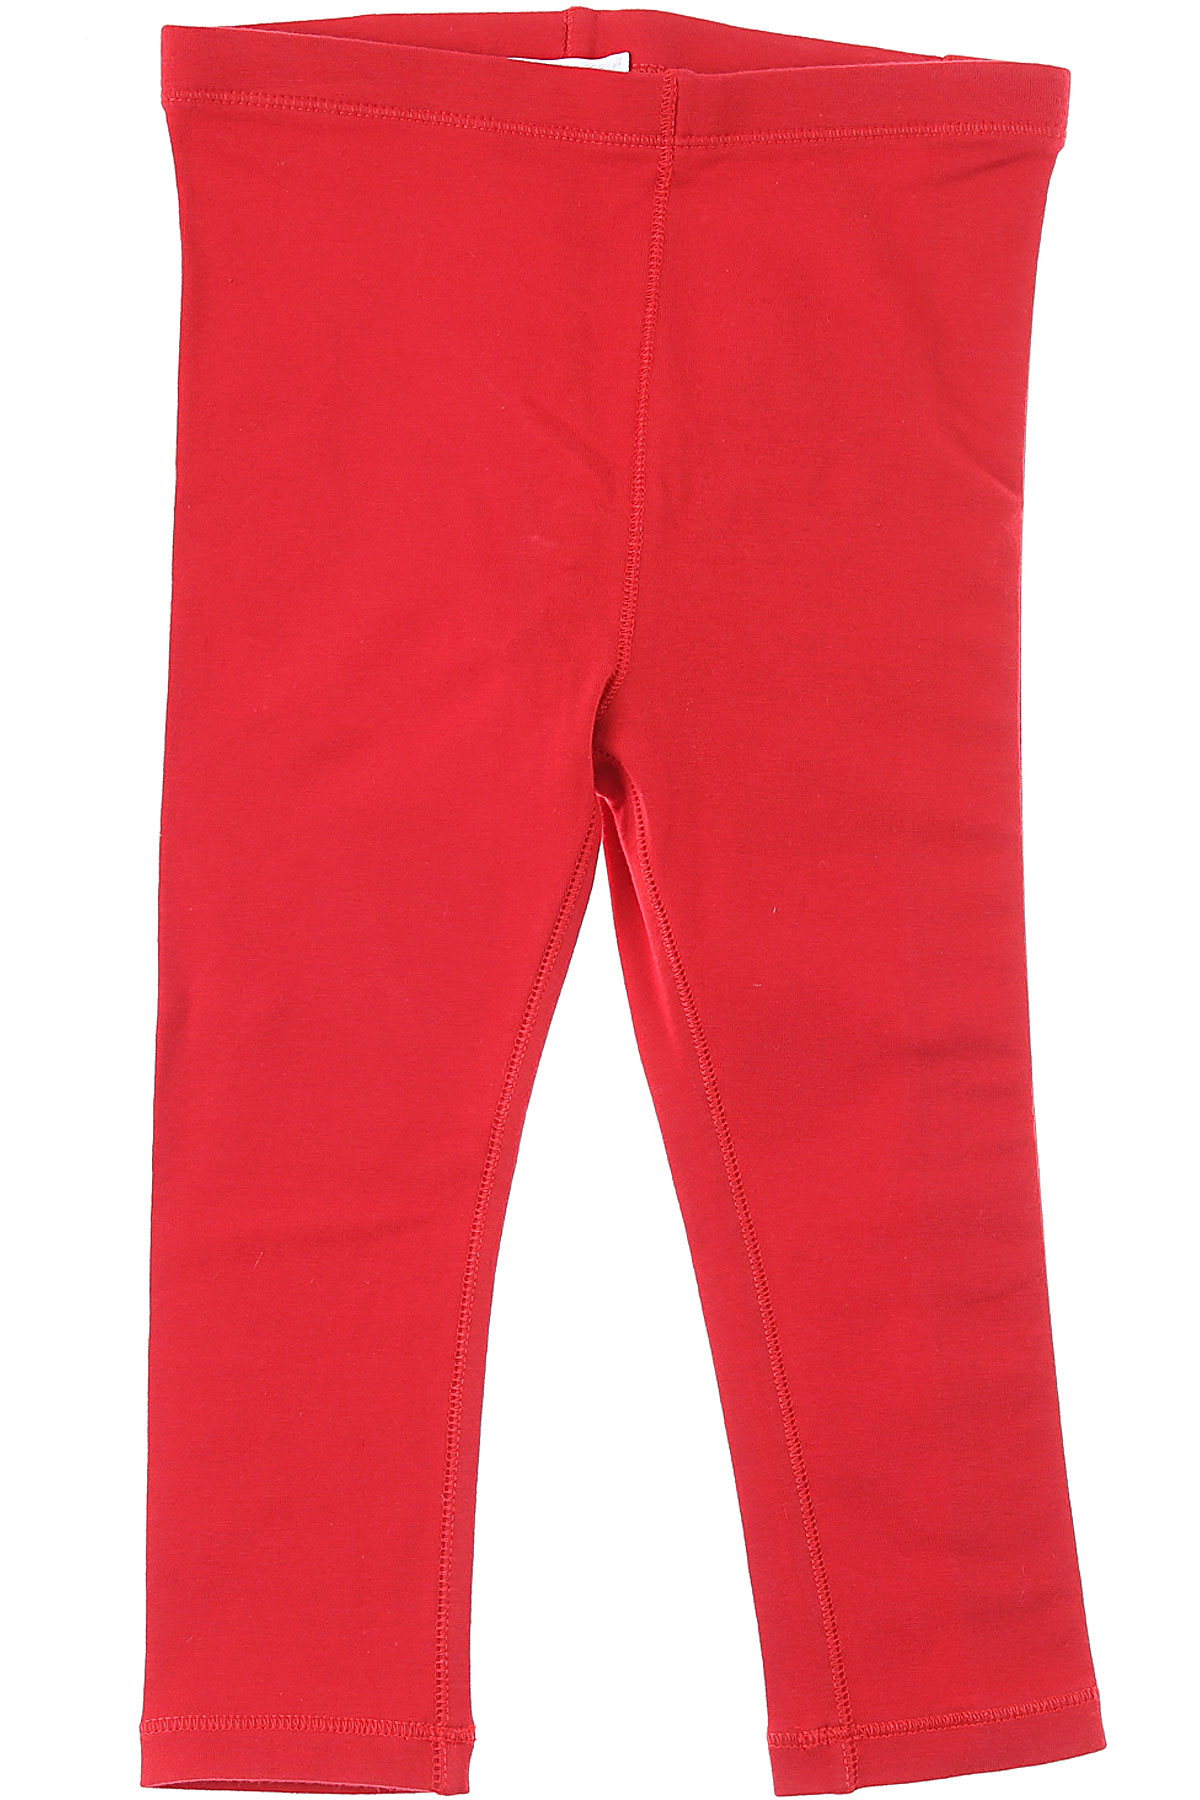 Burberry Baby Pants for Girls On Sale, Red, Cotton, 2019, 12M 18M 2Y 6M